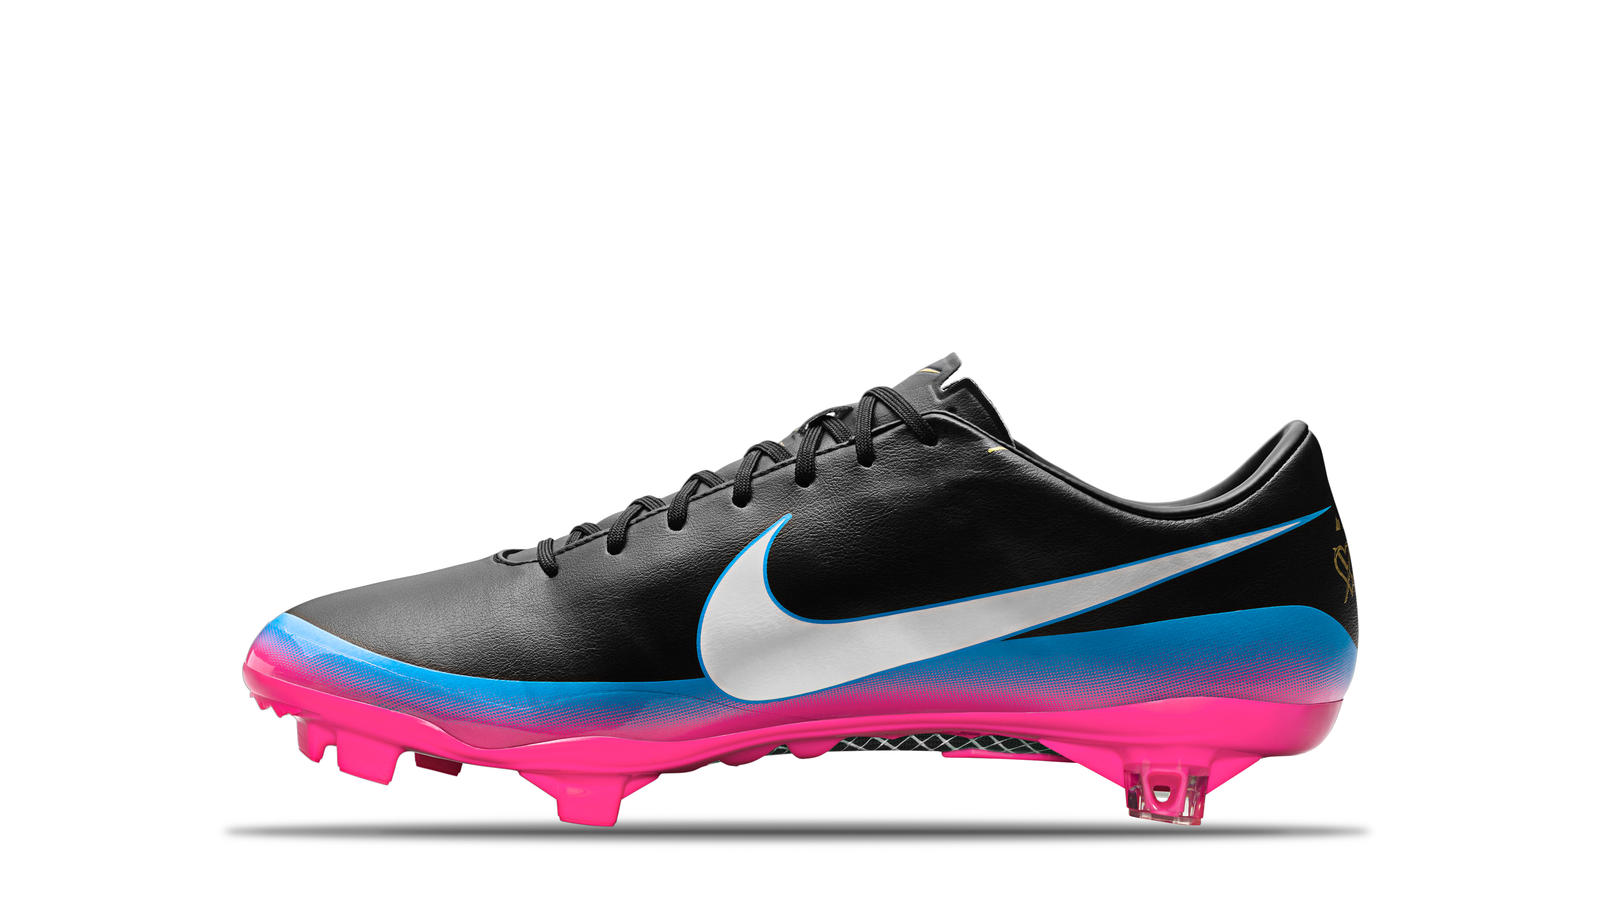 Nike mercurial vapor 9 cr7 limited edition, frauen trainer